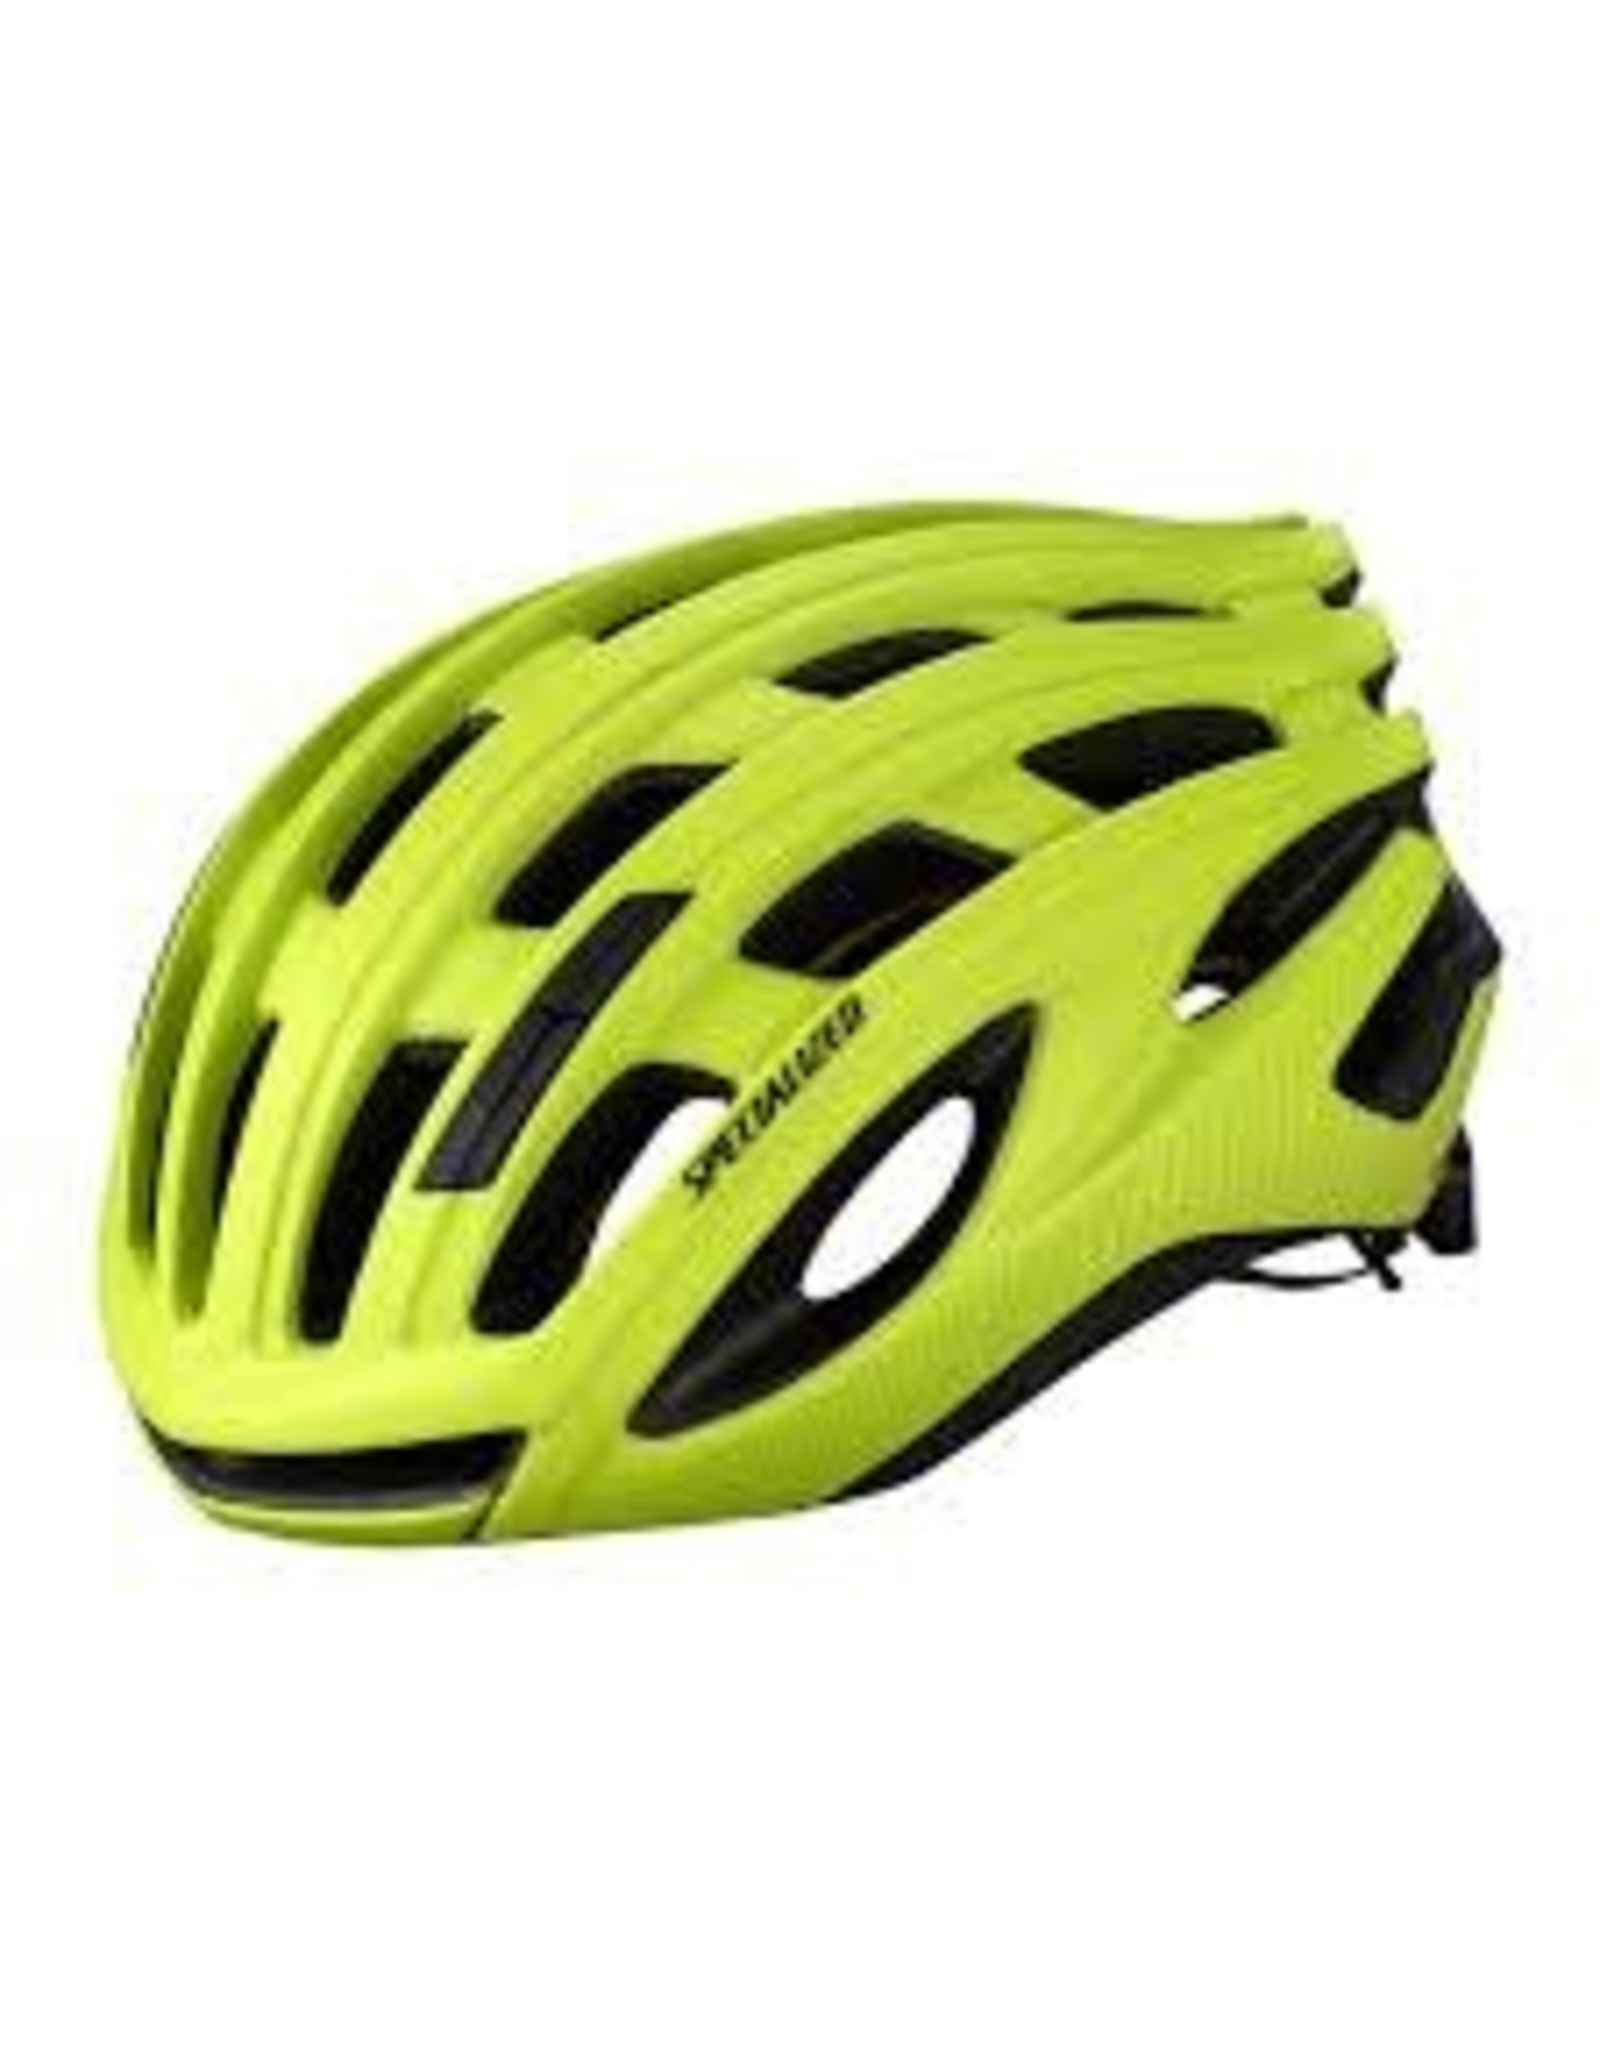 Specialized Helmet Spec Propero 3 ANGI MIPS Hyp Medium